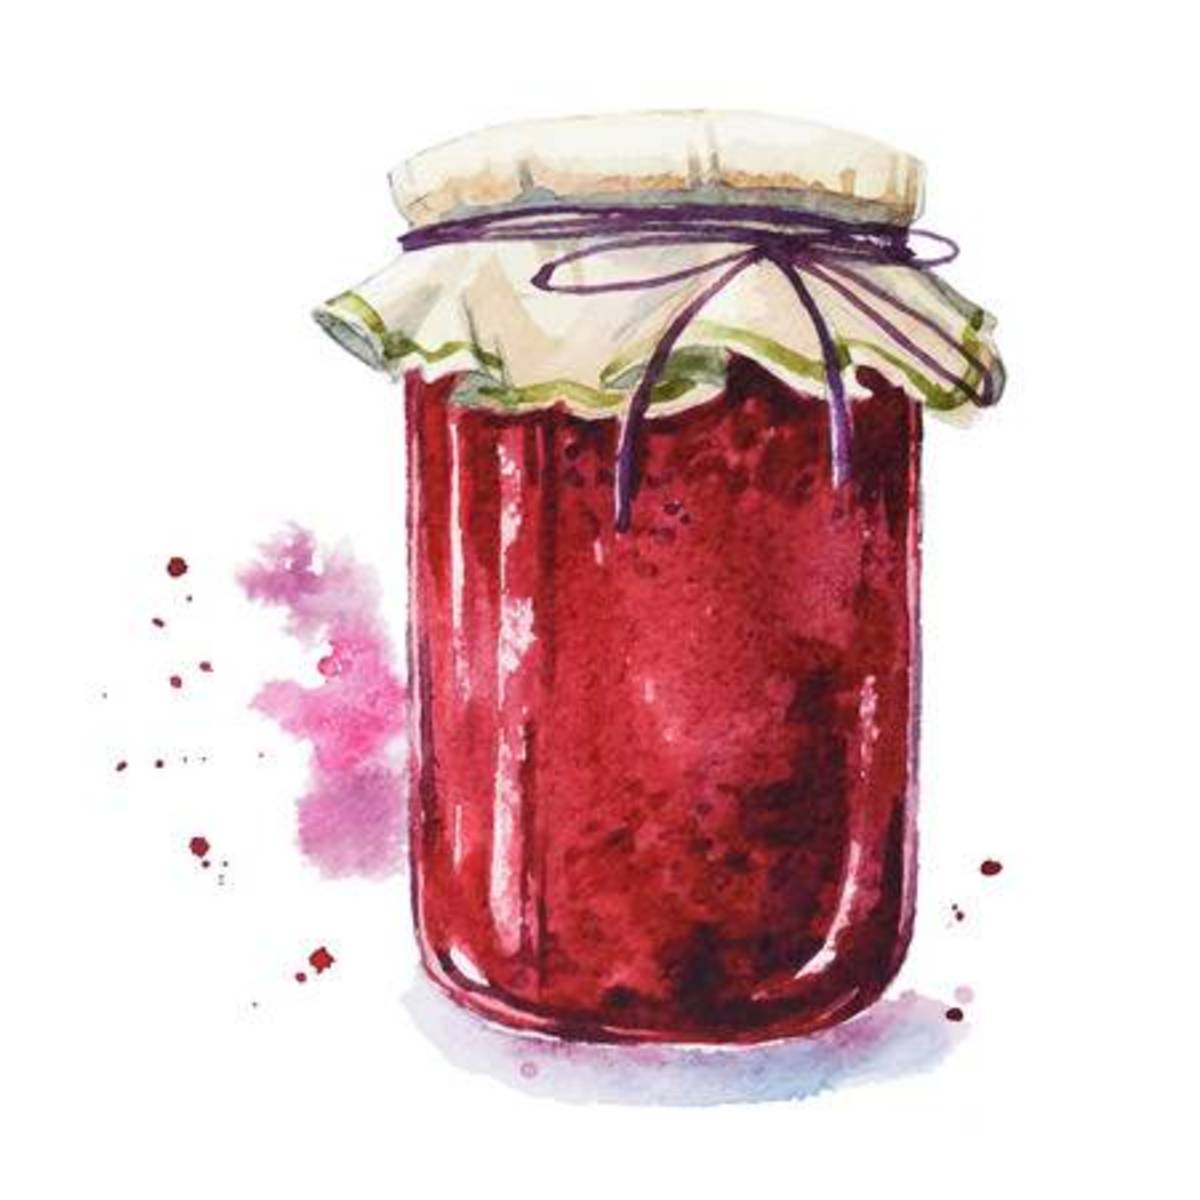 A beautifully presented jar of jam for a friend . . . or a lovely pantry shelf.